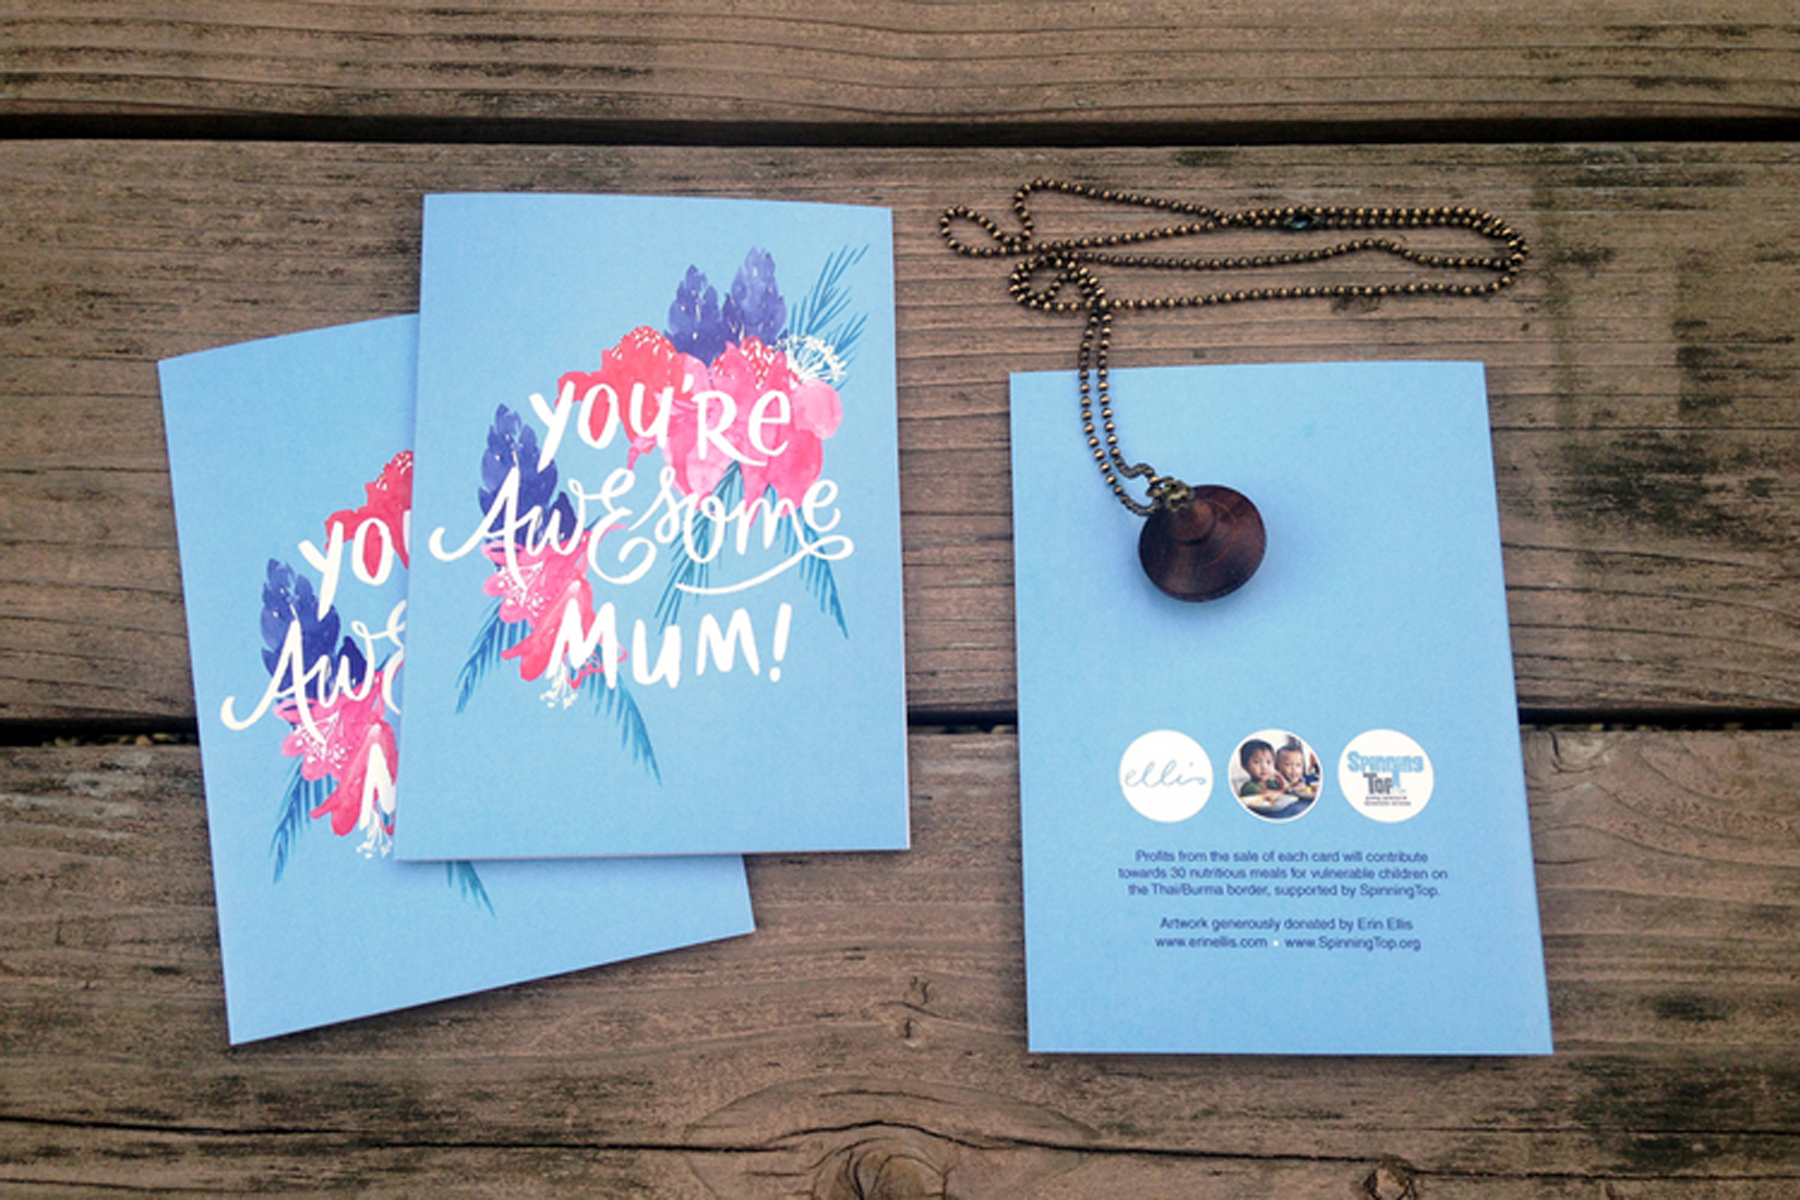 awesome-mum-mothers-day-cards-Spinning-Top-charity-the-body-shop-nz-by-Erin-Ellis.jpg